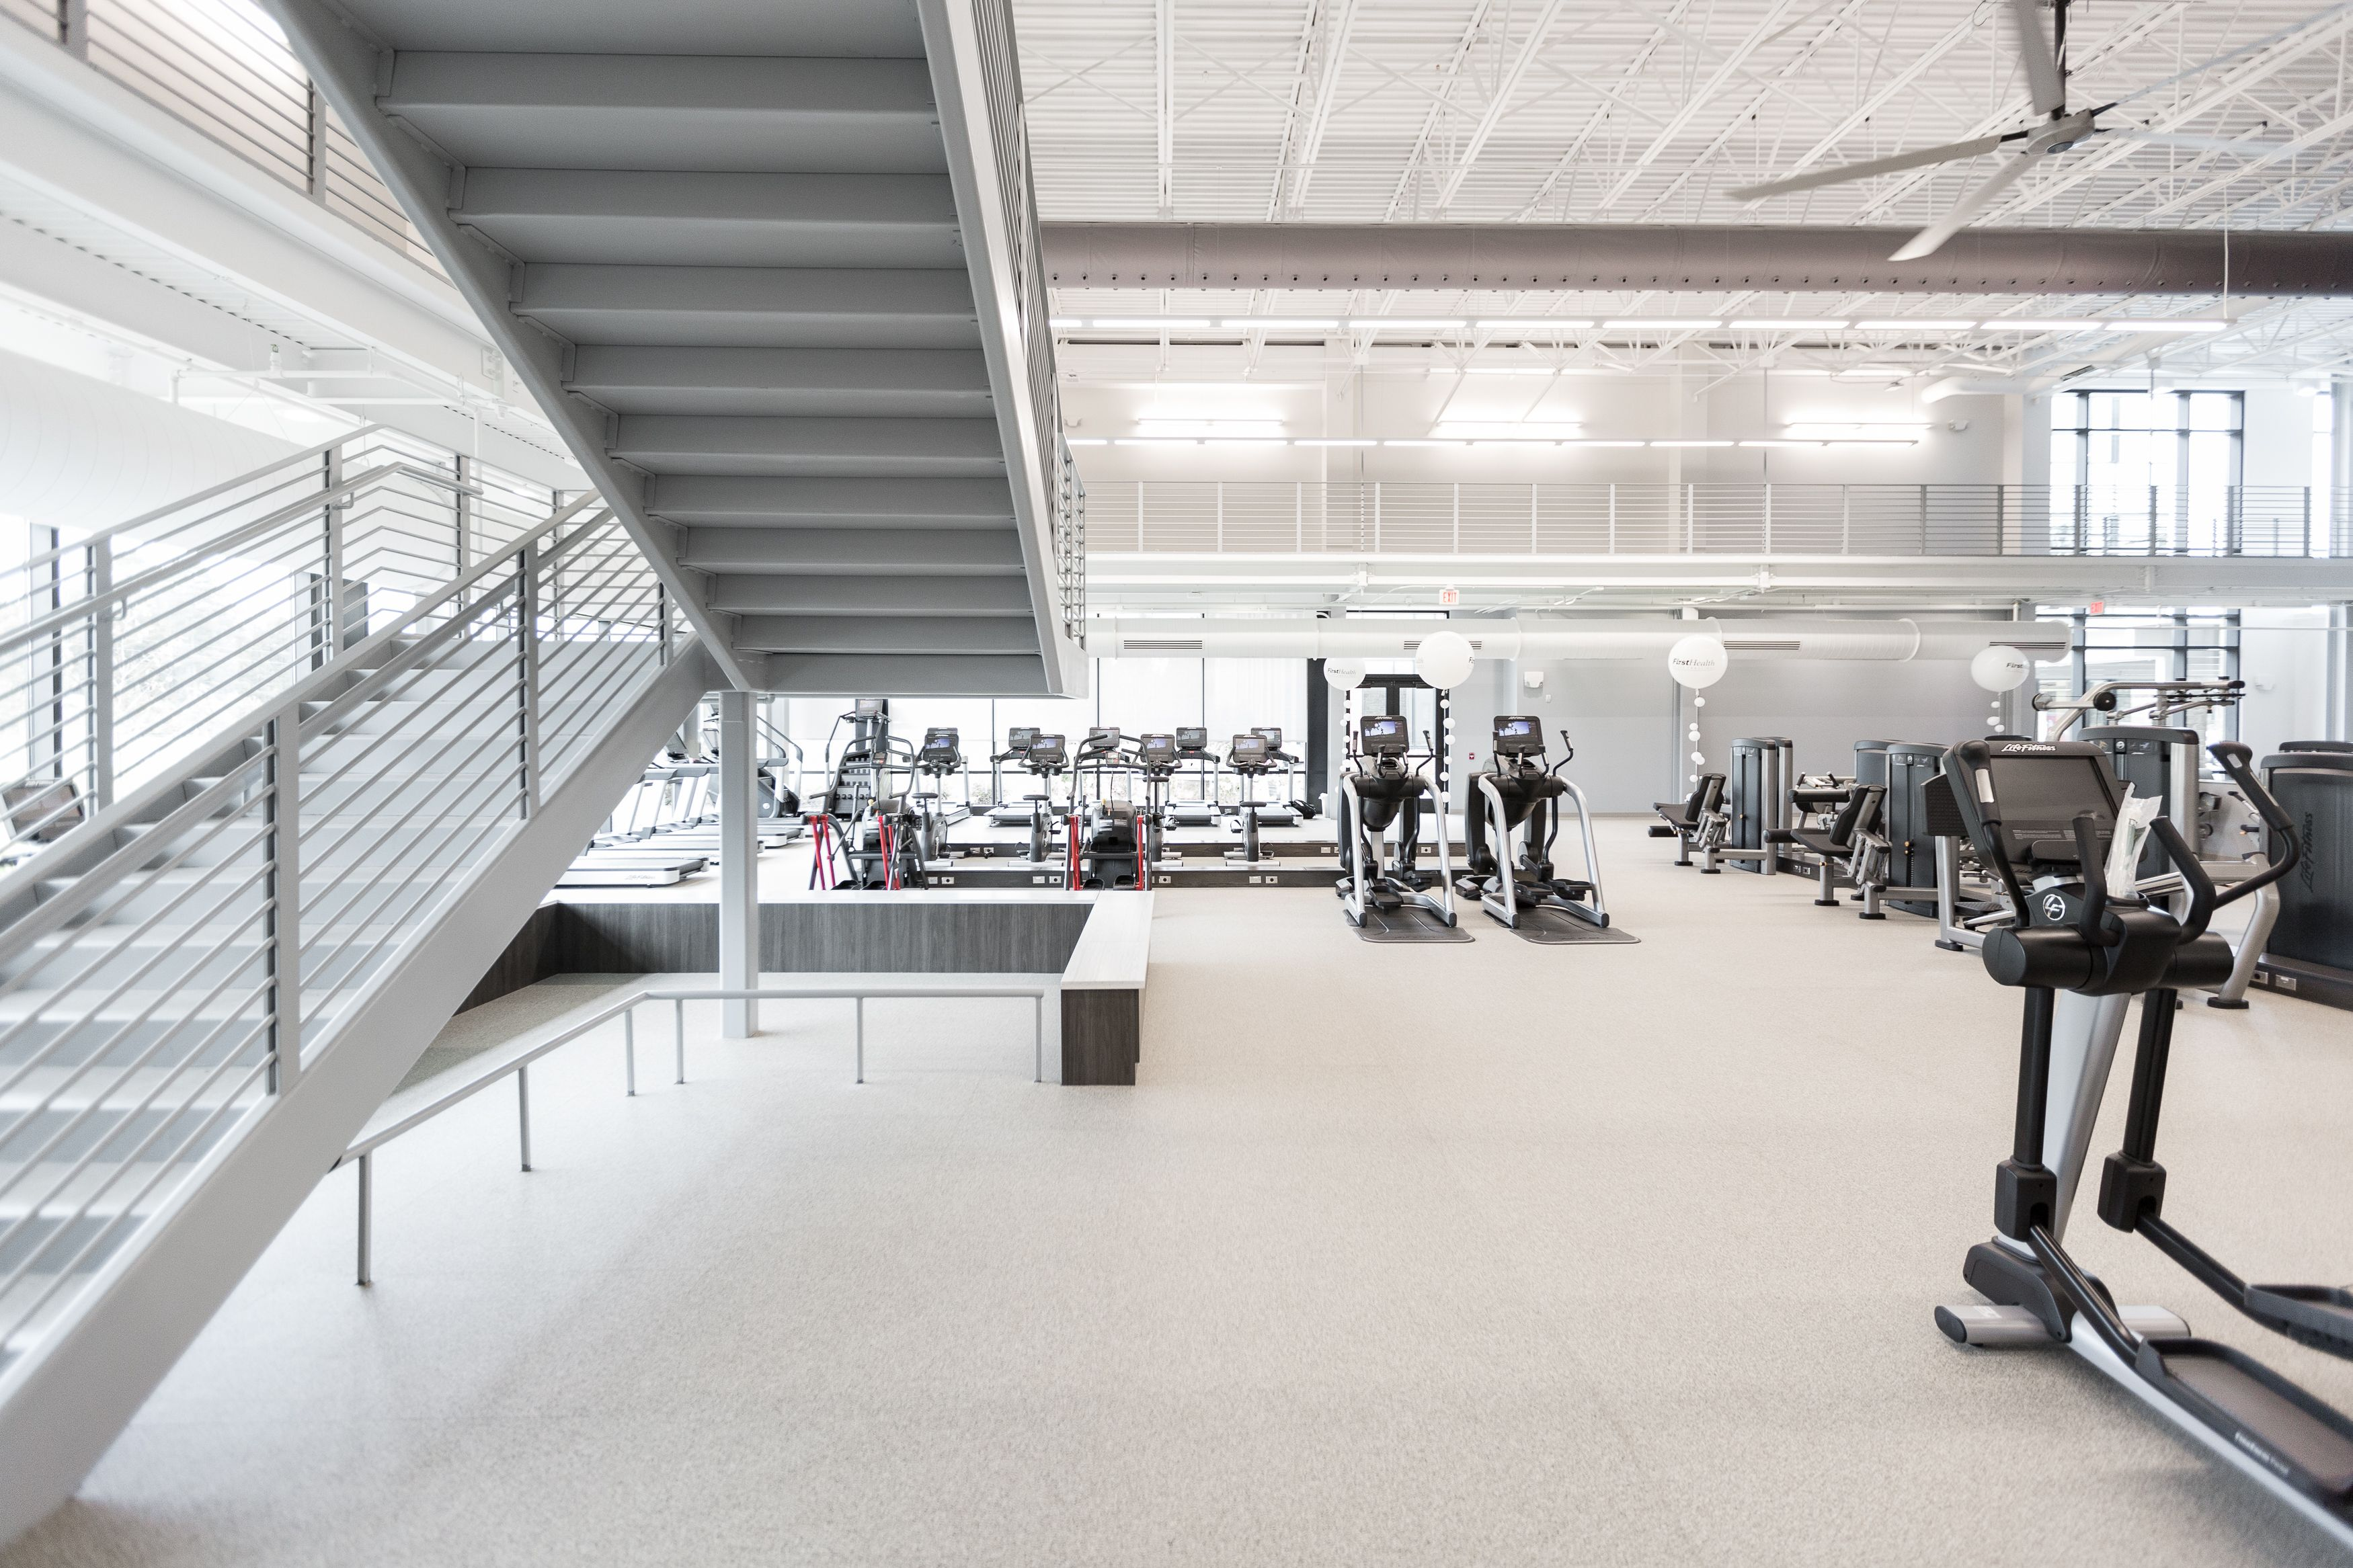 Firsthealth Fitness Lee Campus Sanford Nc Ecore Ecosurfaces Ecofit Spartansurfaces Recycledrubber Fitn Transparent Design Health Care Recycled Rubber